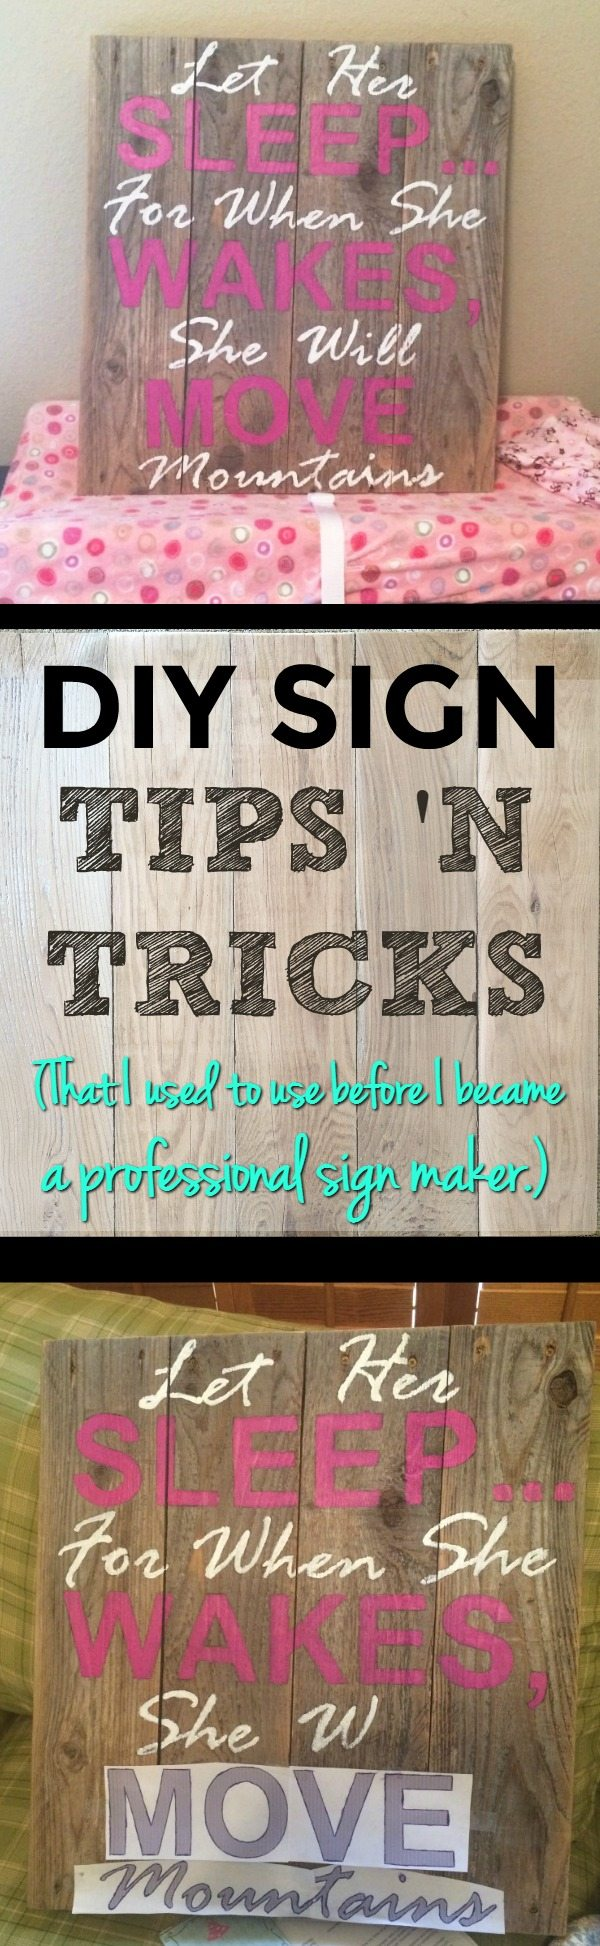 DIY Sign Instructions | Make cheap wood signs | Instructions to make wood signs | DIY sign stencils | How to make signs with wood | DIY reclaimed wood signs | DIY nursery signs